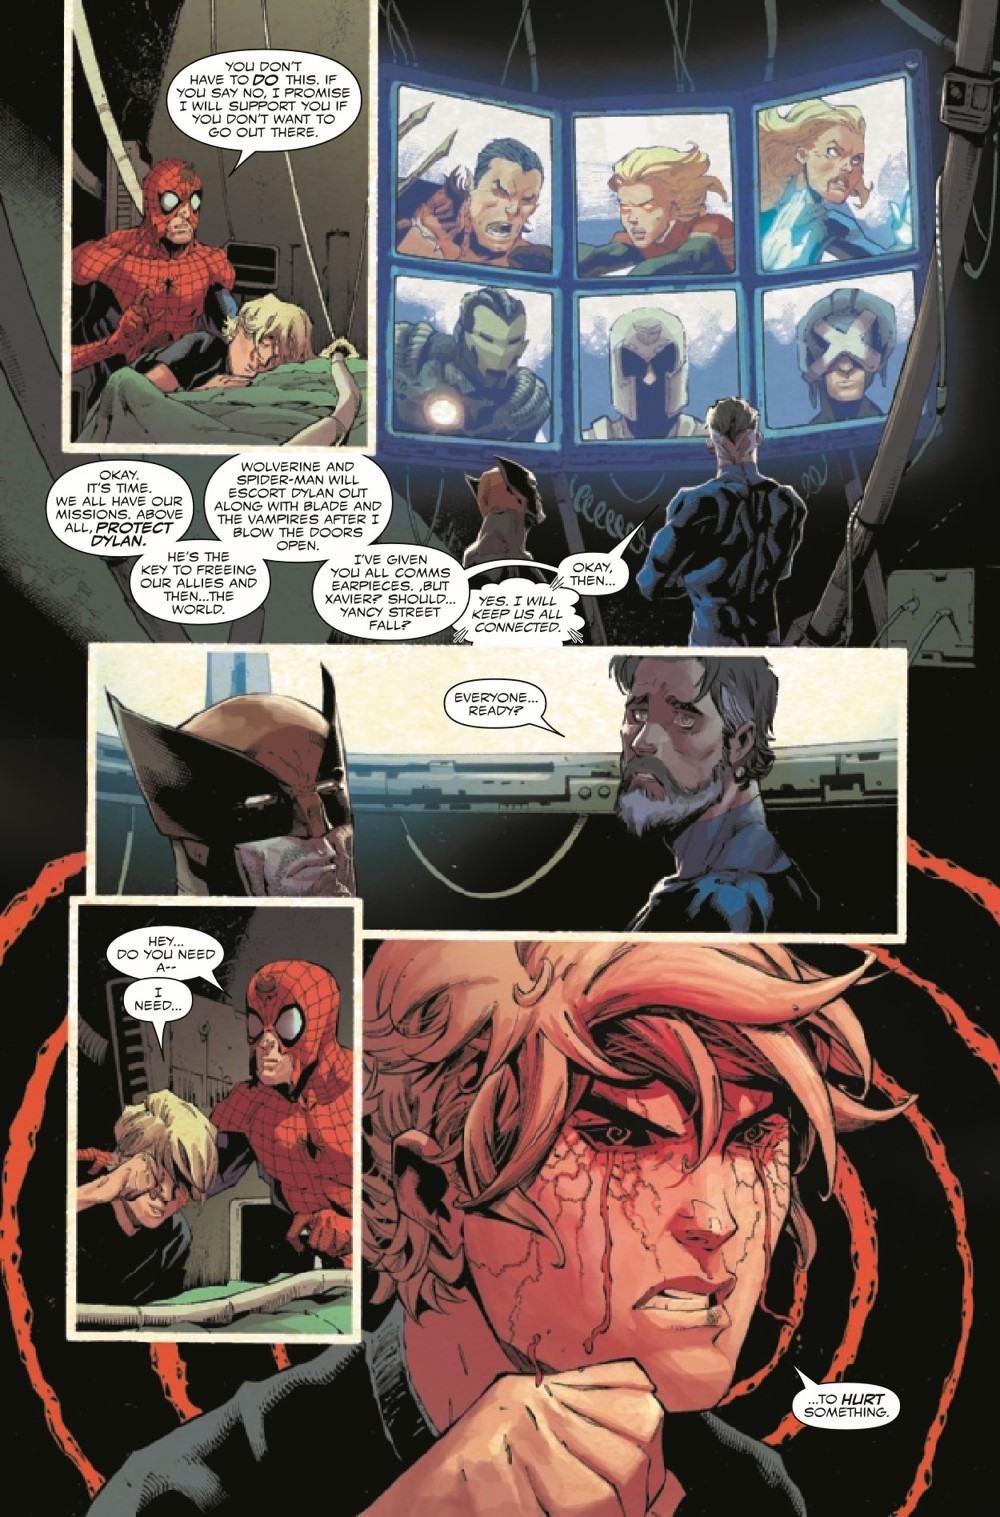 KINGINBLACK2020003_Preview-5 ComicList Previews: KING IN BLACK #3 (OF 5)